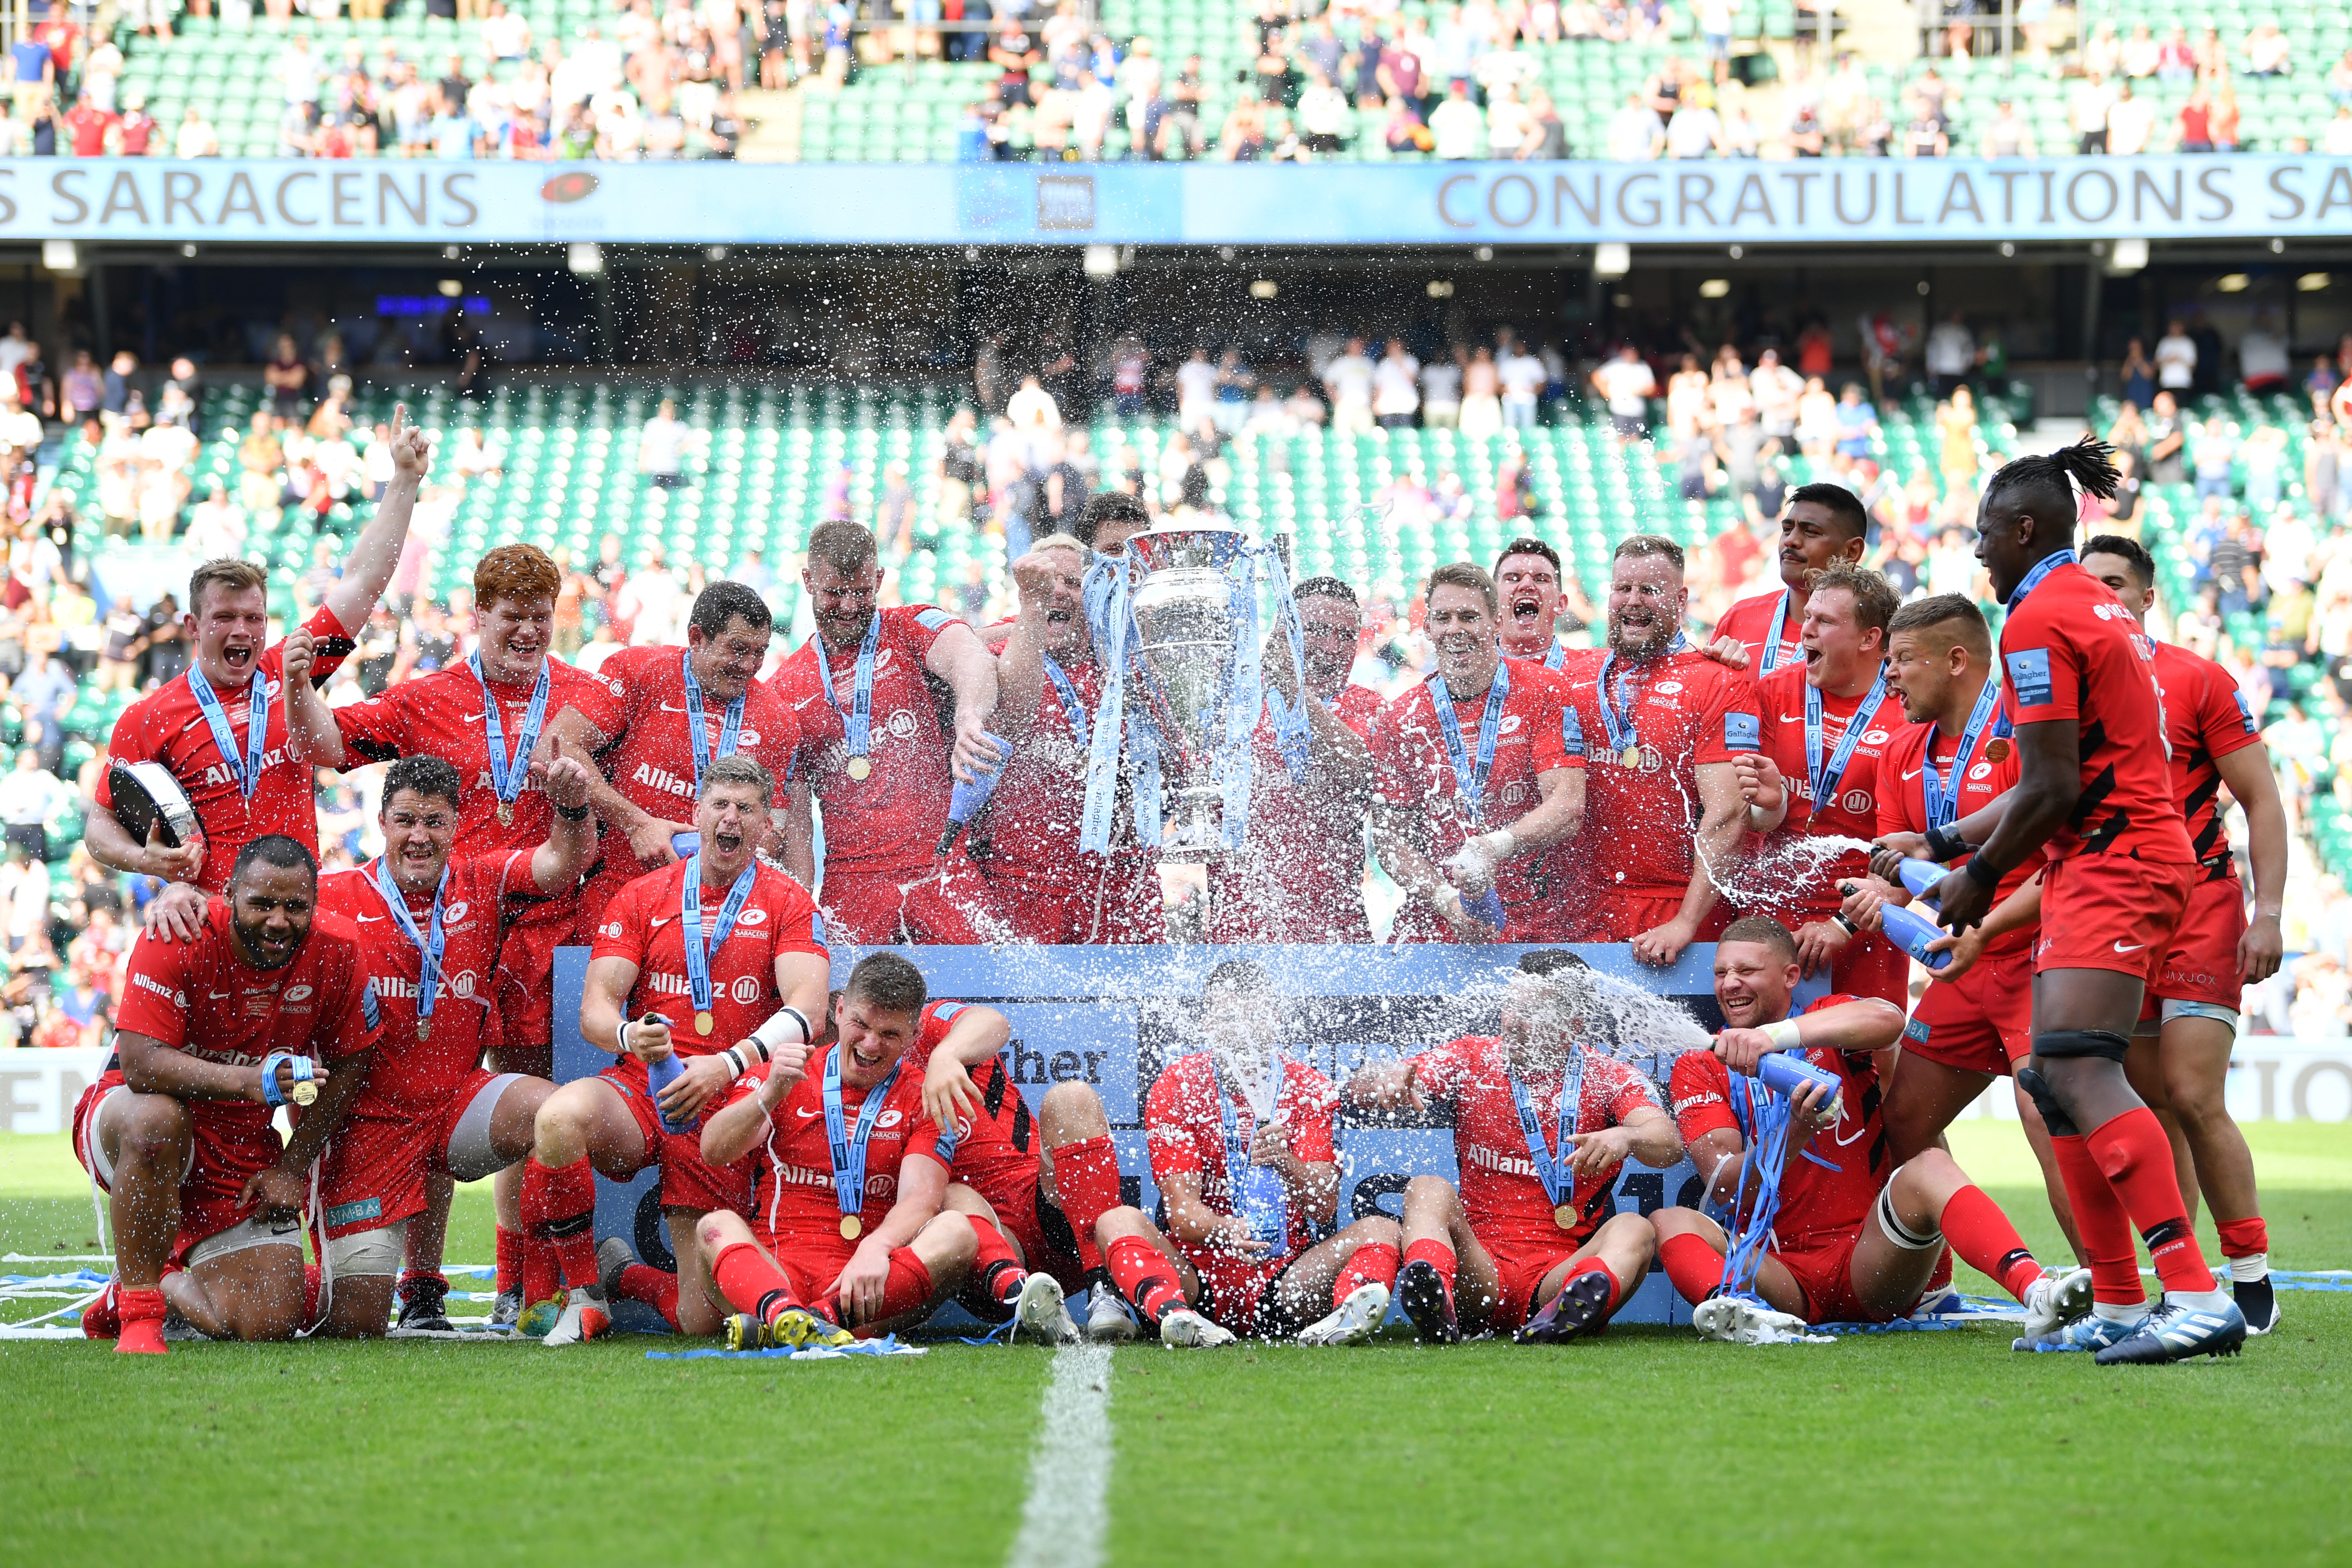 Saracens Docked 35 Points And Fined 5 3m For Breaching Salary Cap Rules